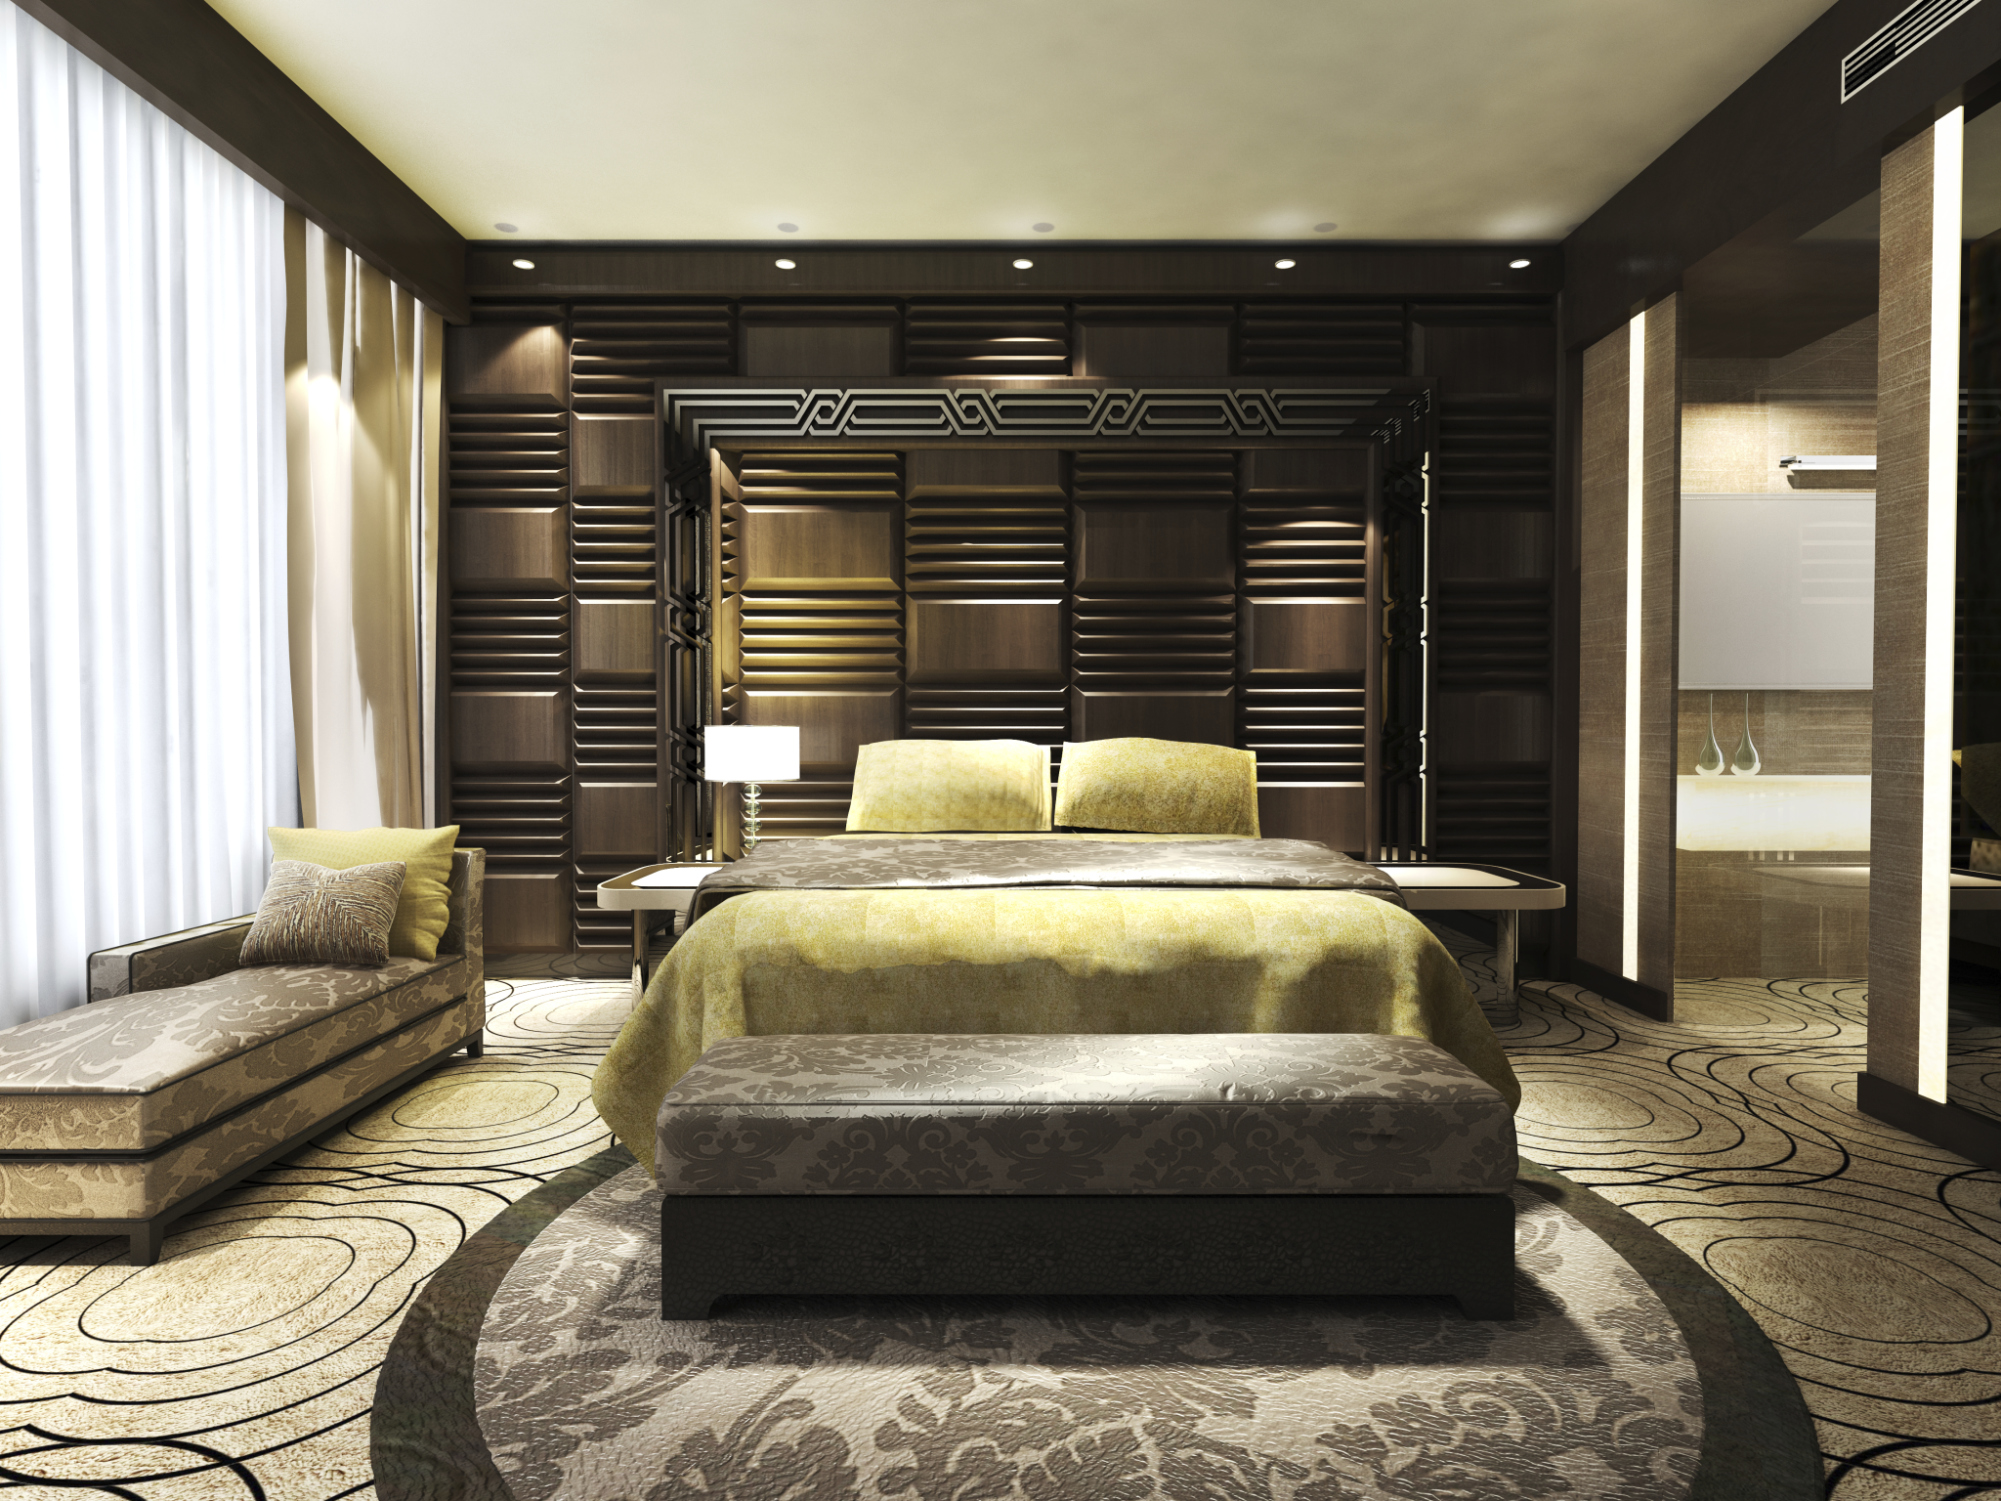 Guestroom Design and Meeting Productivity